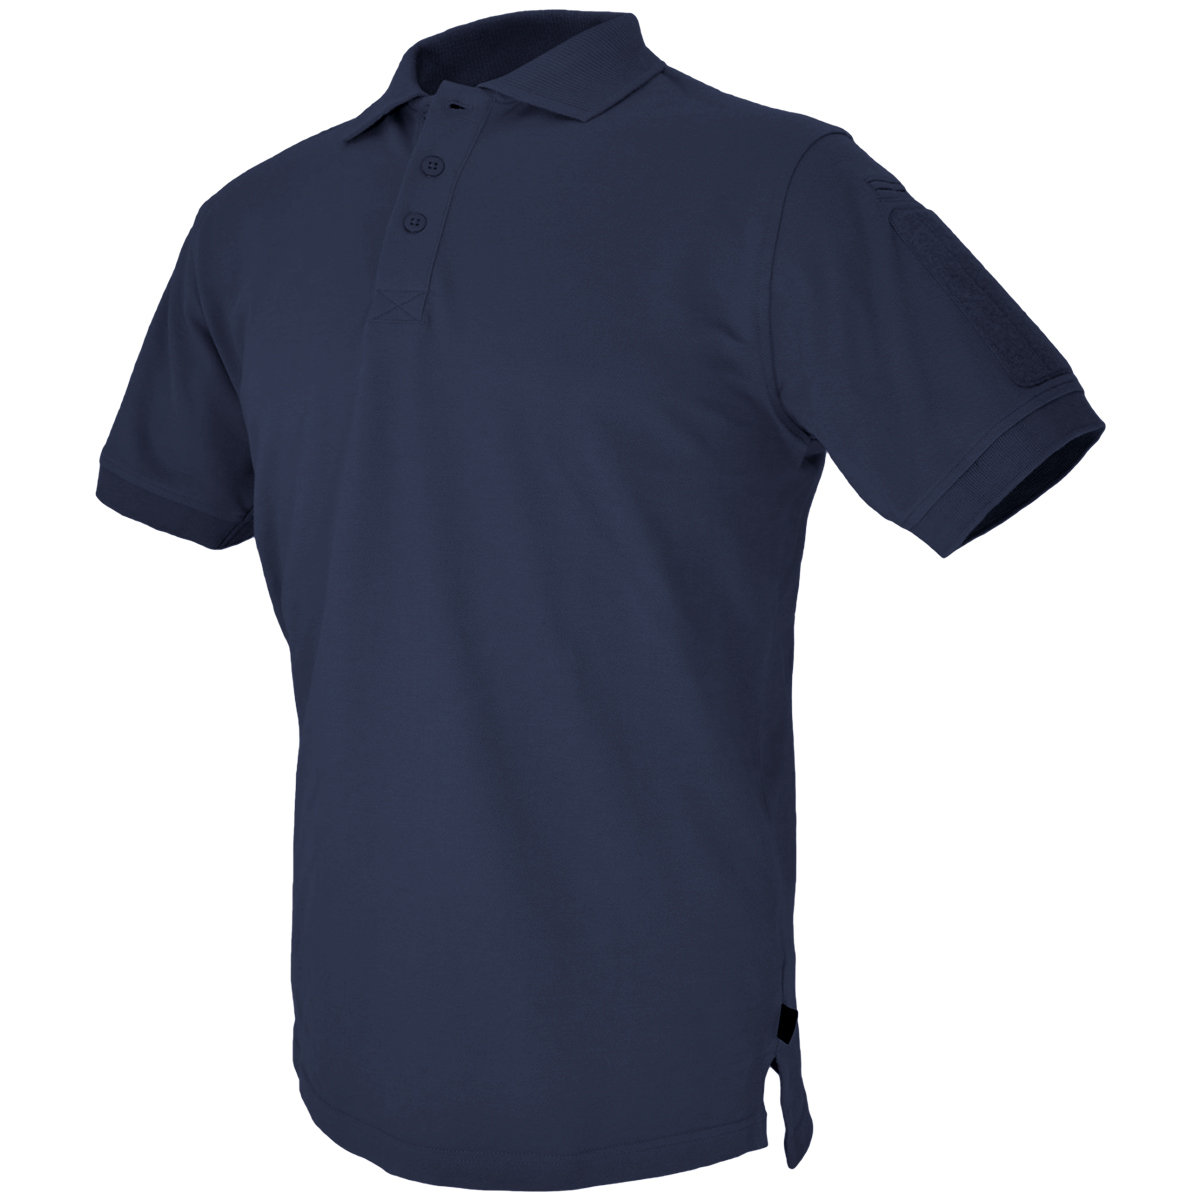 Hazard 4 undervest plain front battle polo shirt navy t for Plain navy polo shirts